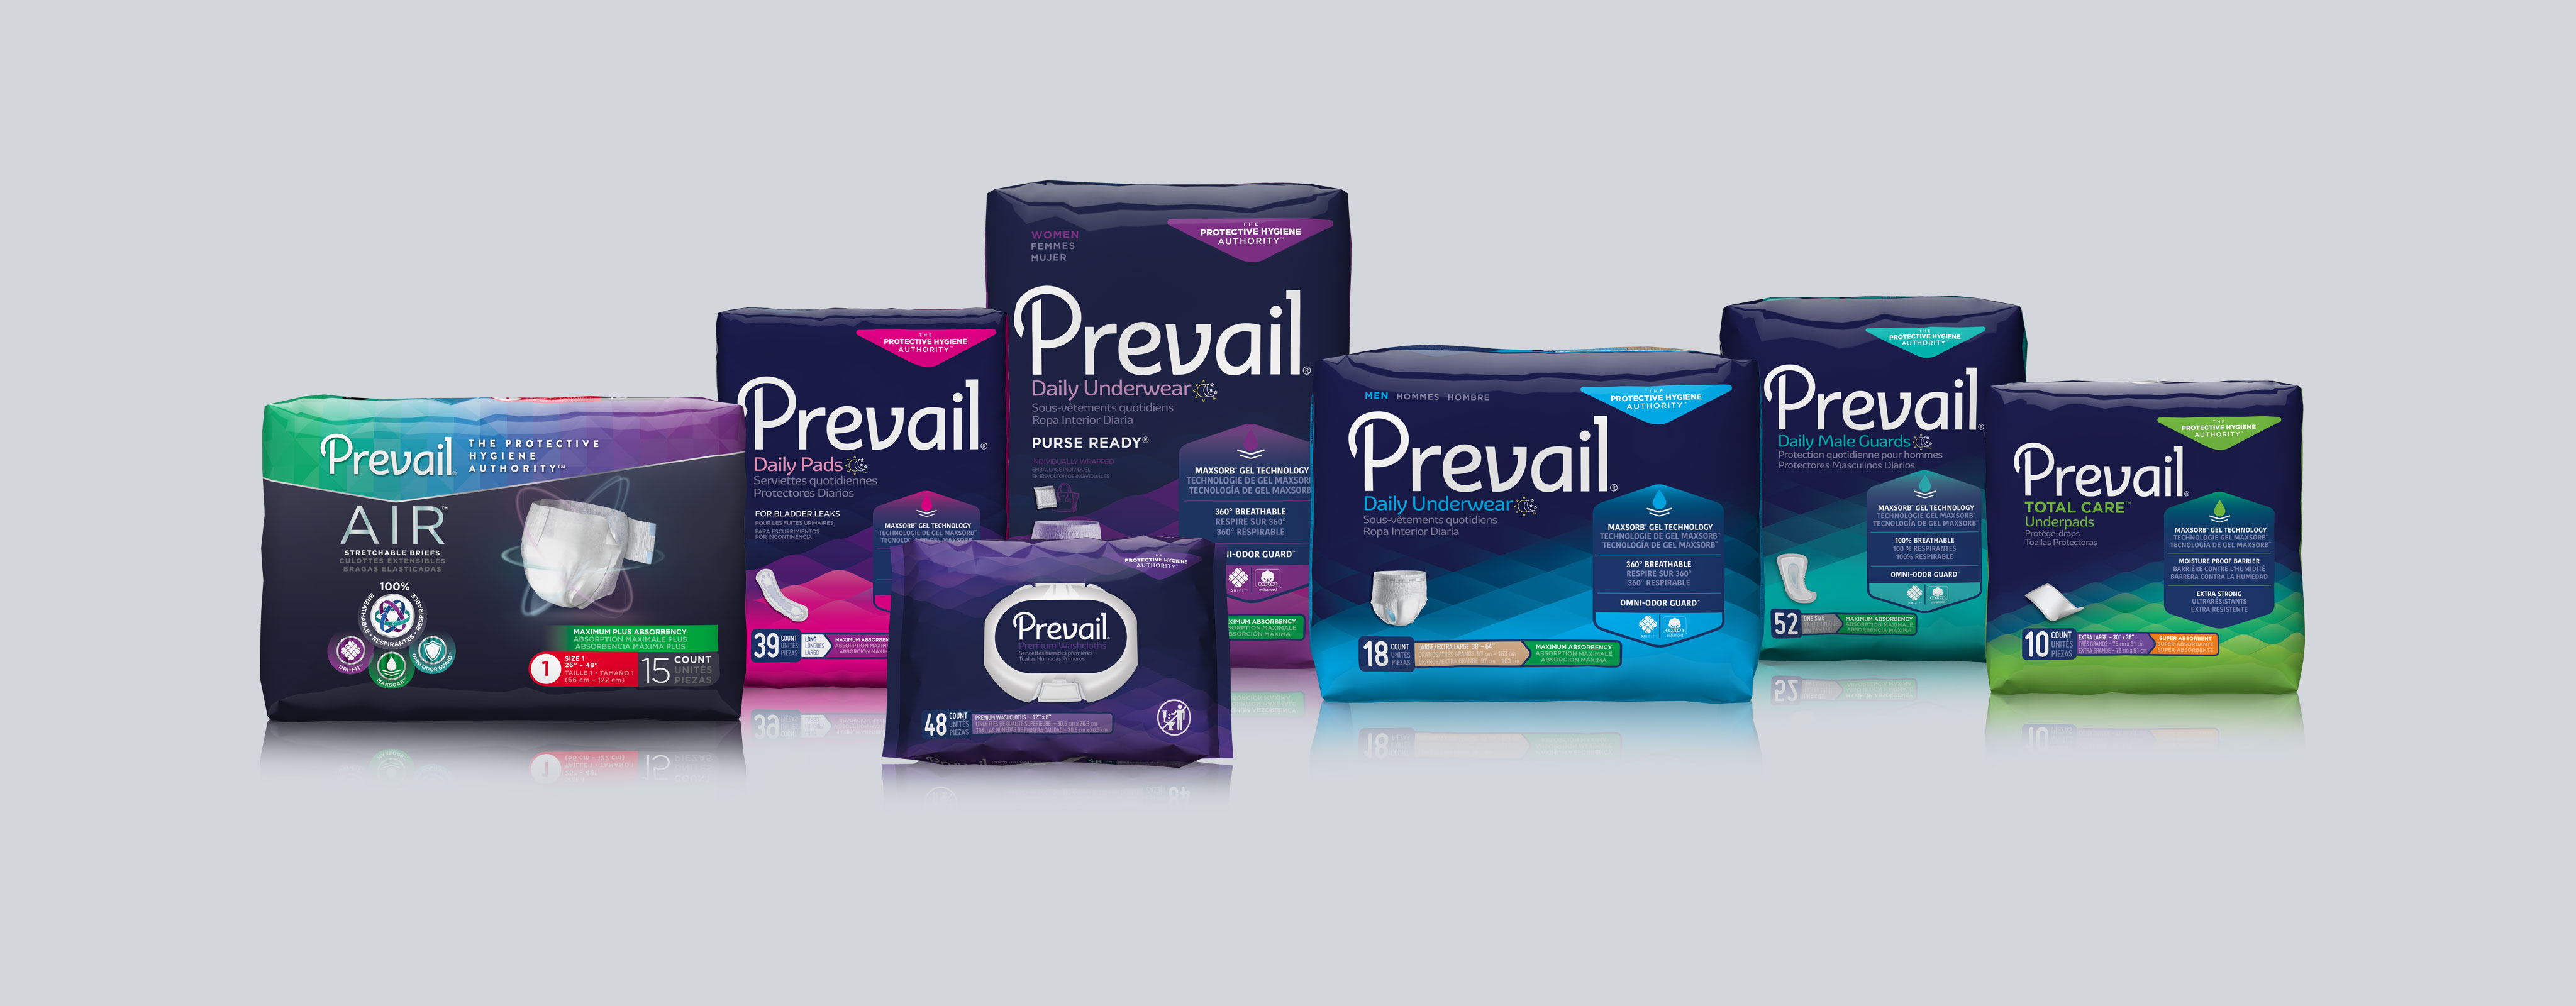 prevail-brand-collage.jpg